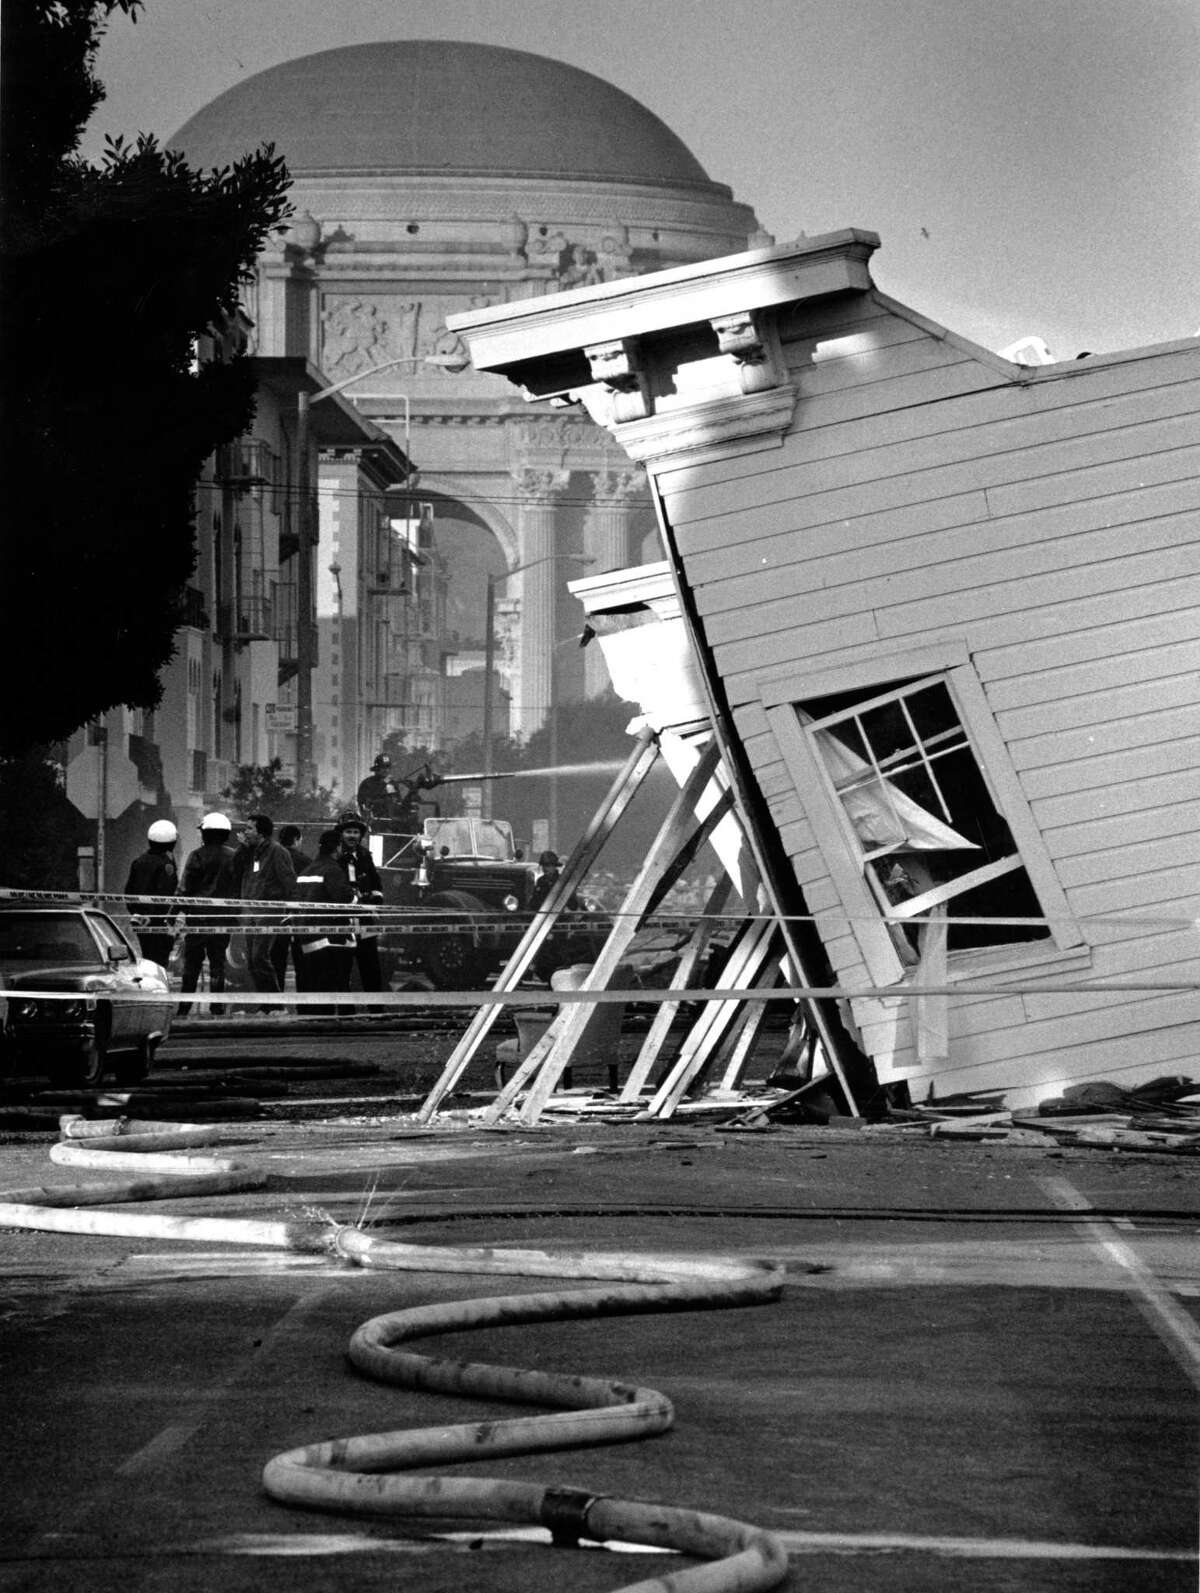 Crews battle a blaze at the Palace of Fine Arts in the background after the Loma Prieta earthquake.